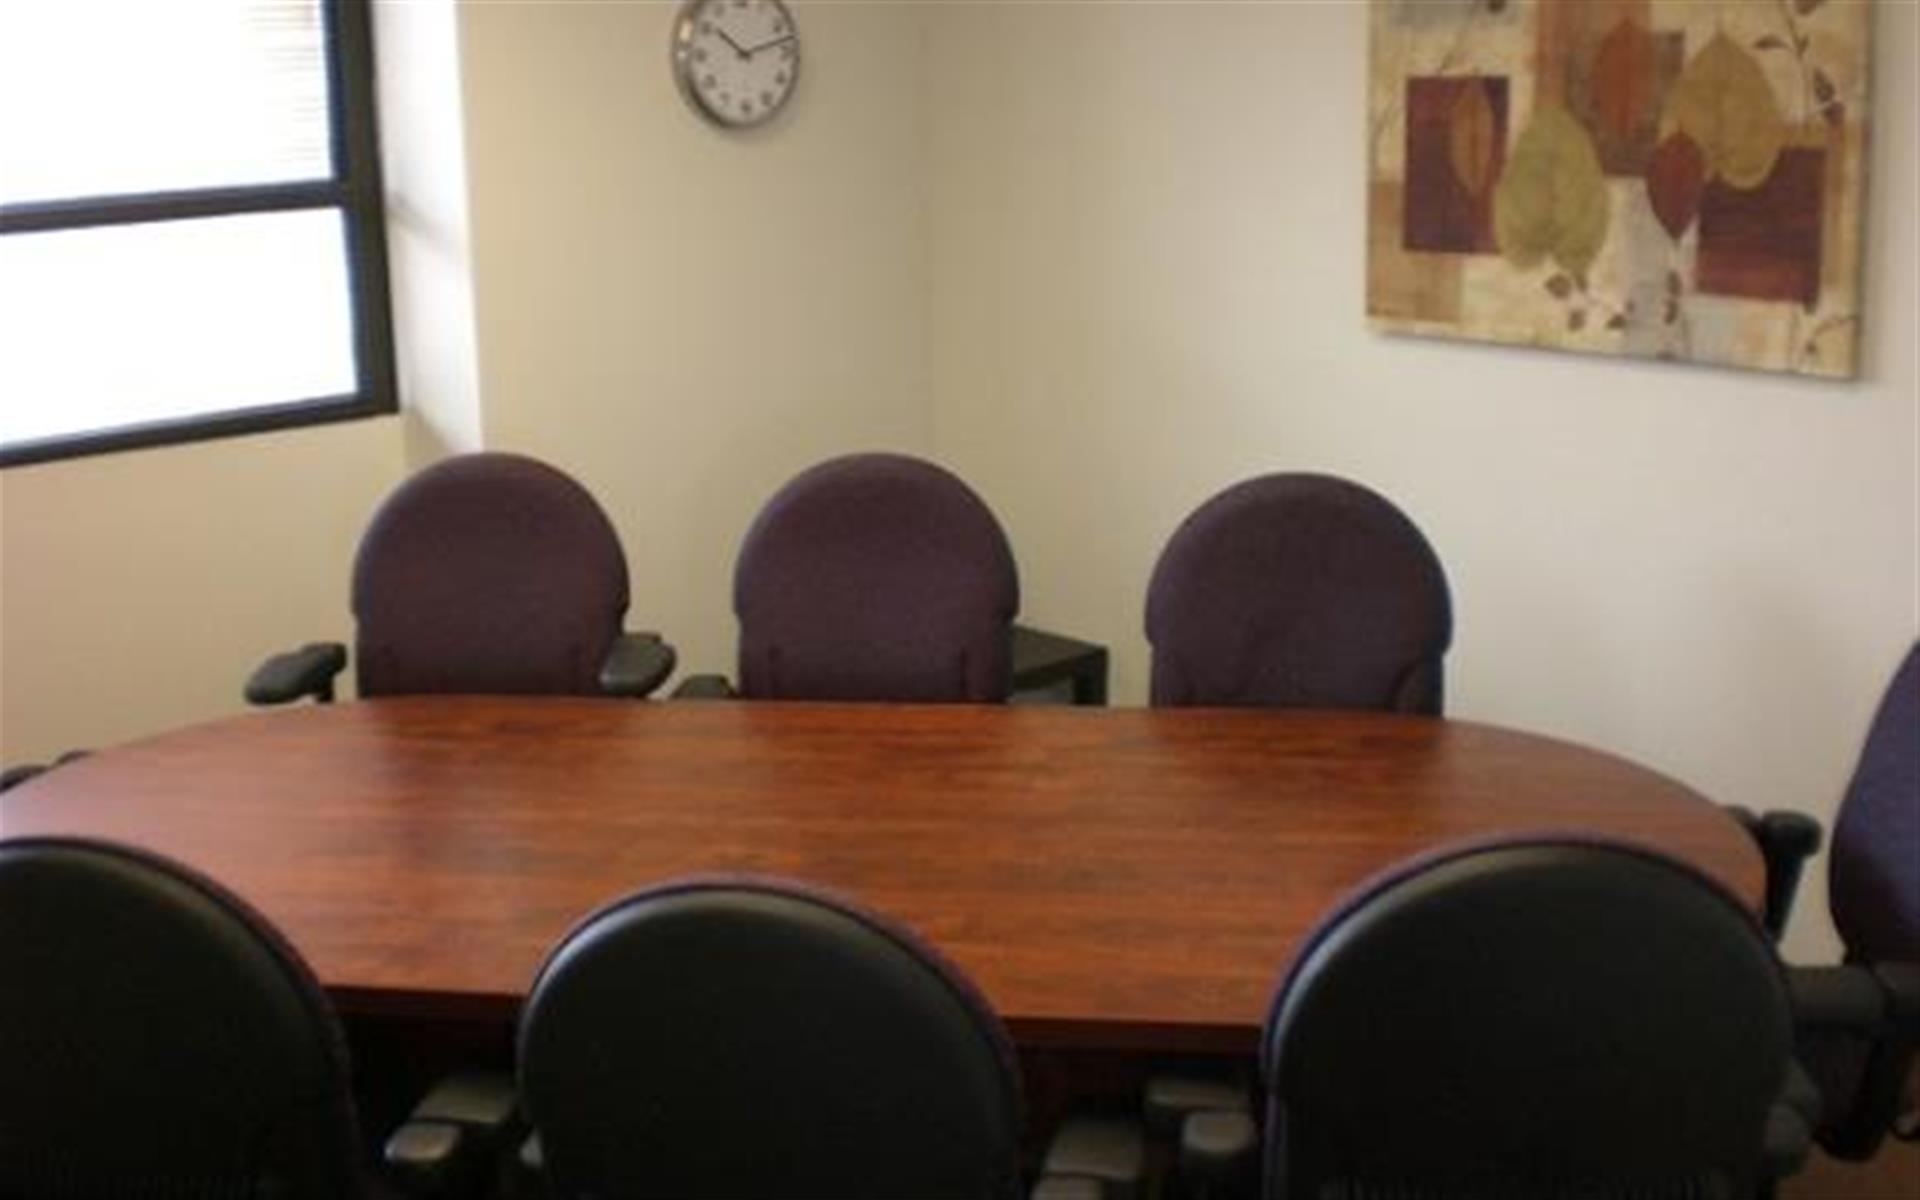 Plaza Executive Suites Old Town - Executive Conference Room